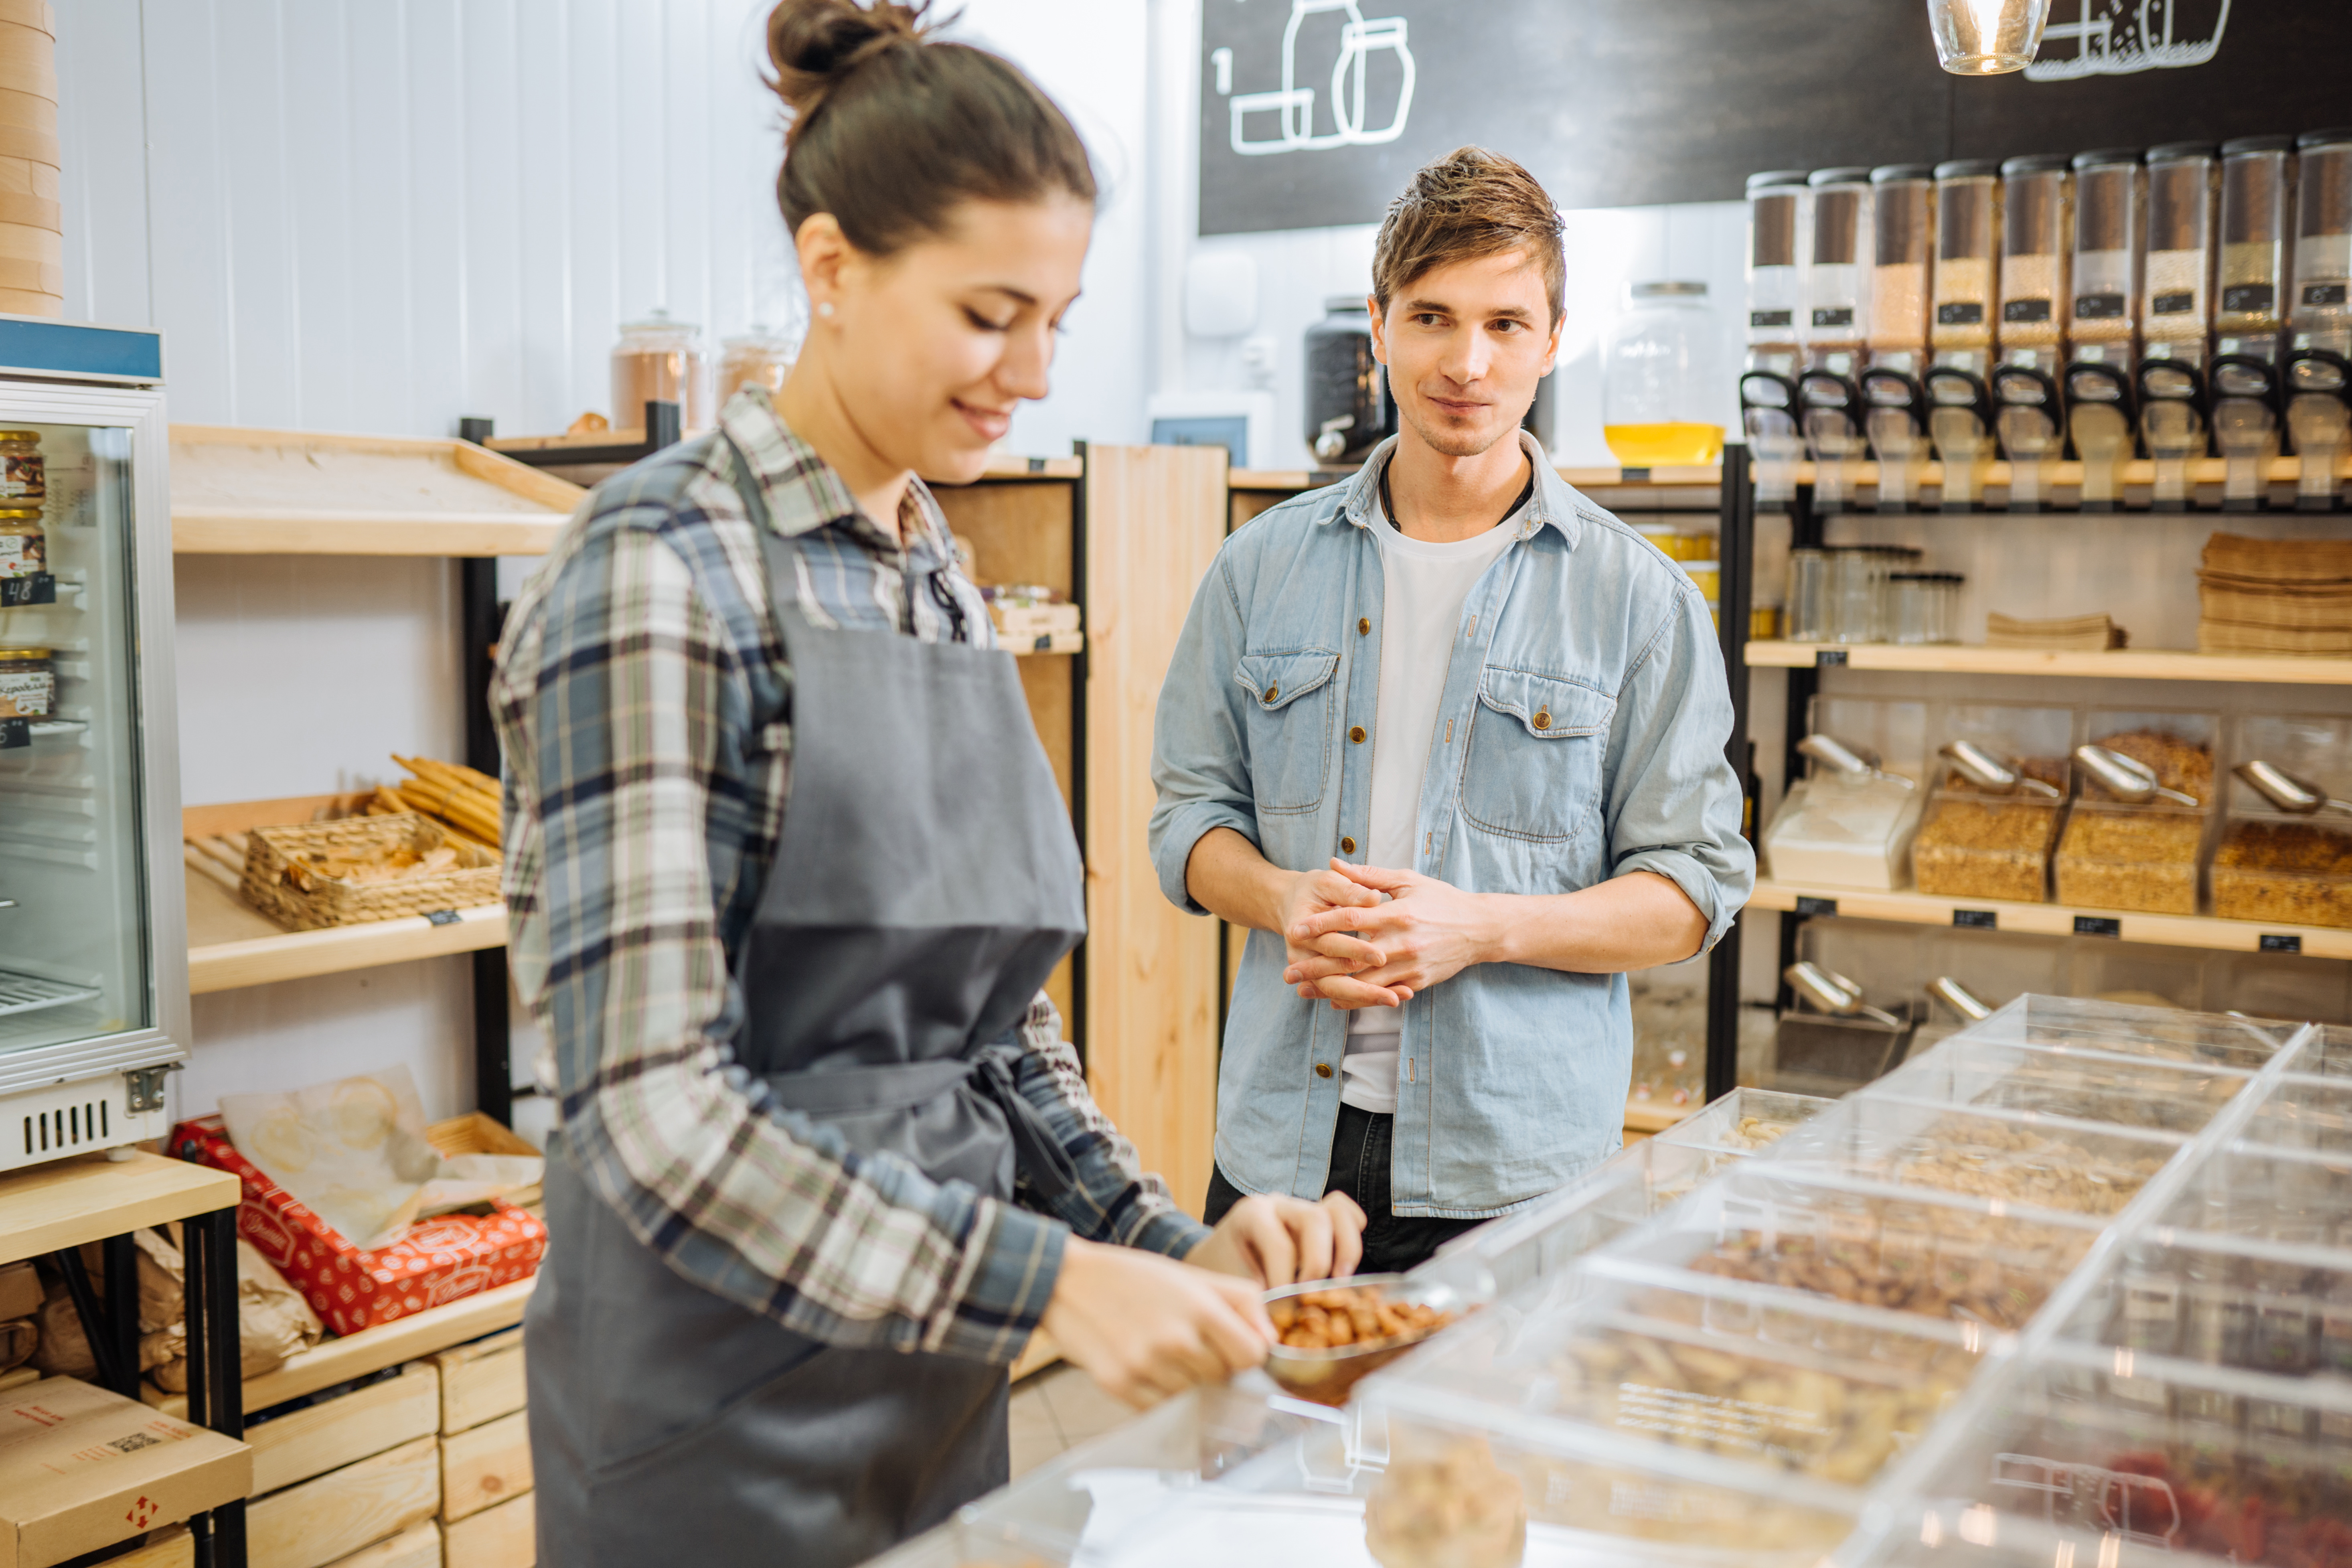 Open for business: How retailers can ensure they succeed post-lockdown. [Interview with Georgina Drew]